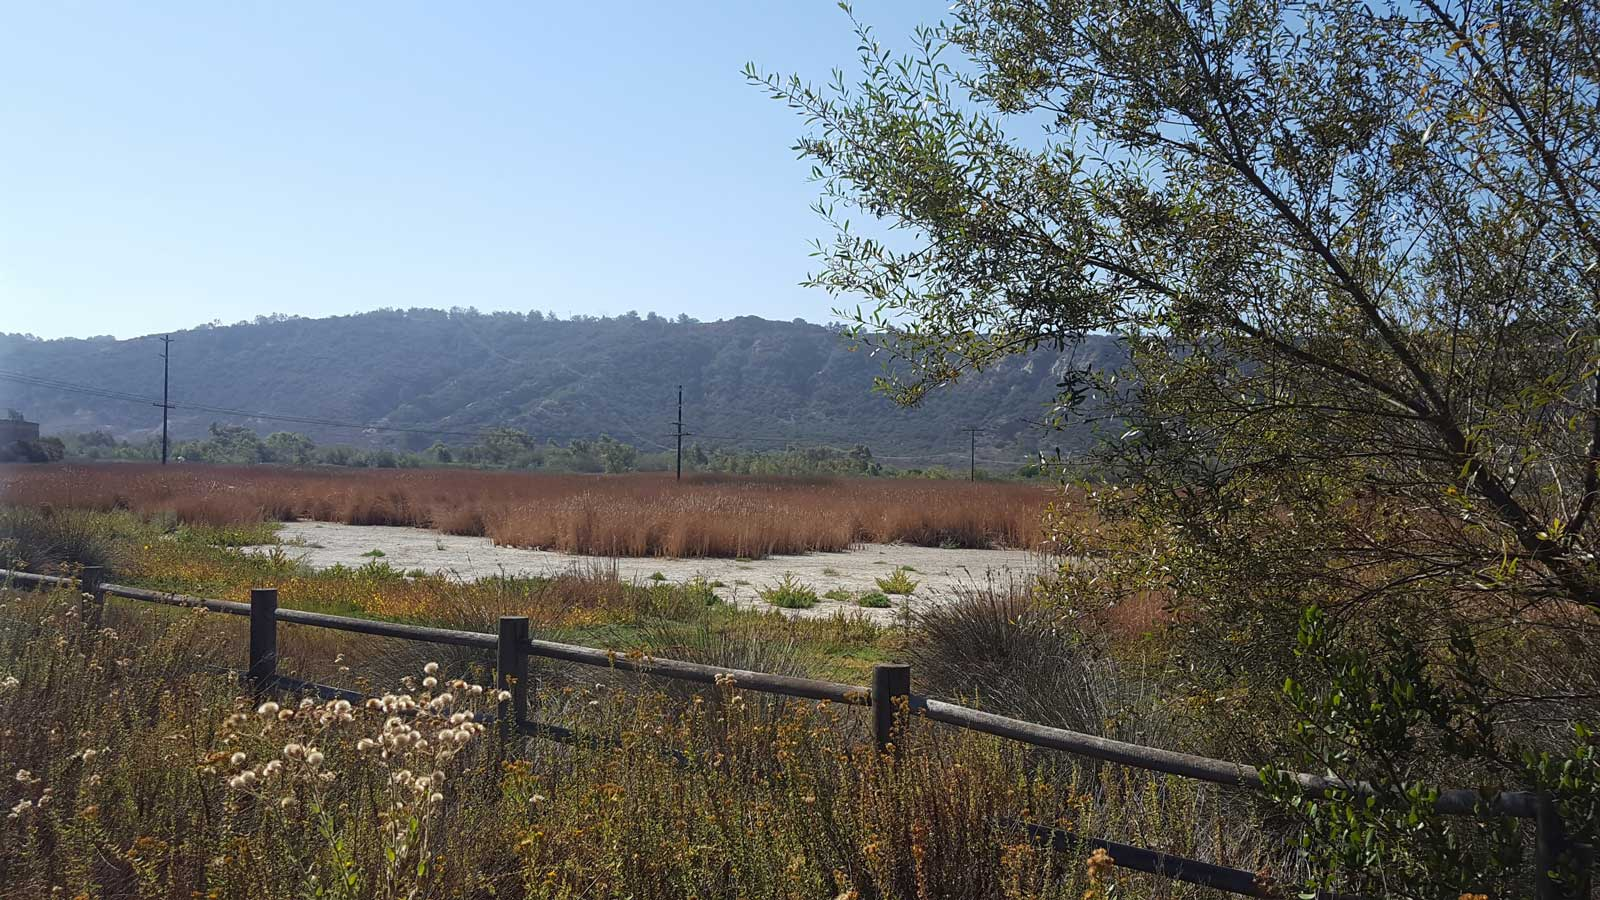 Views-from-Sorrento-Valley-Road-Multi-Use-Trail-2